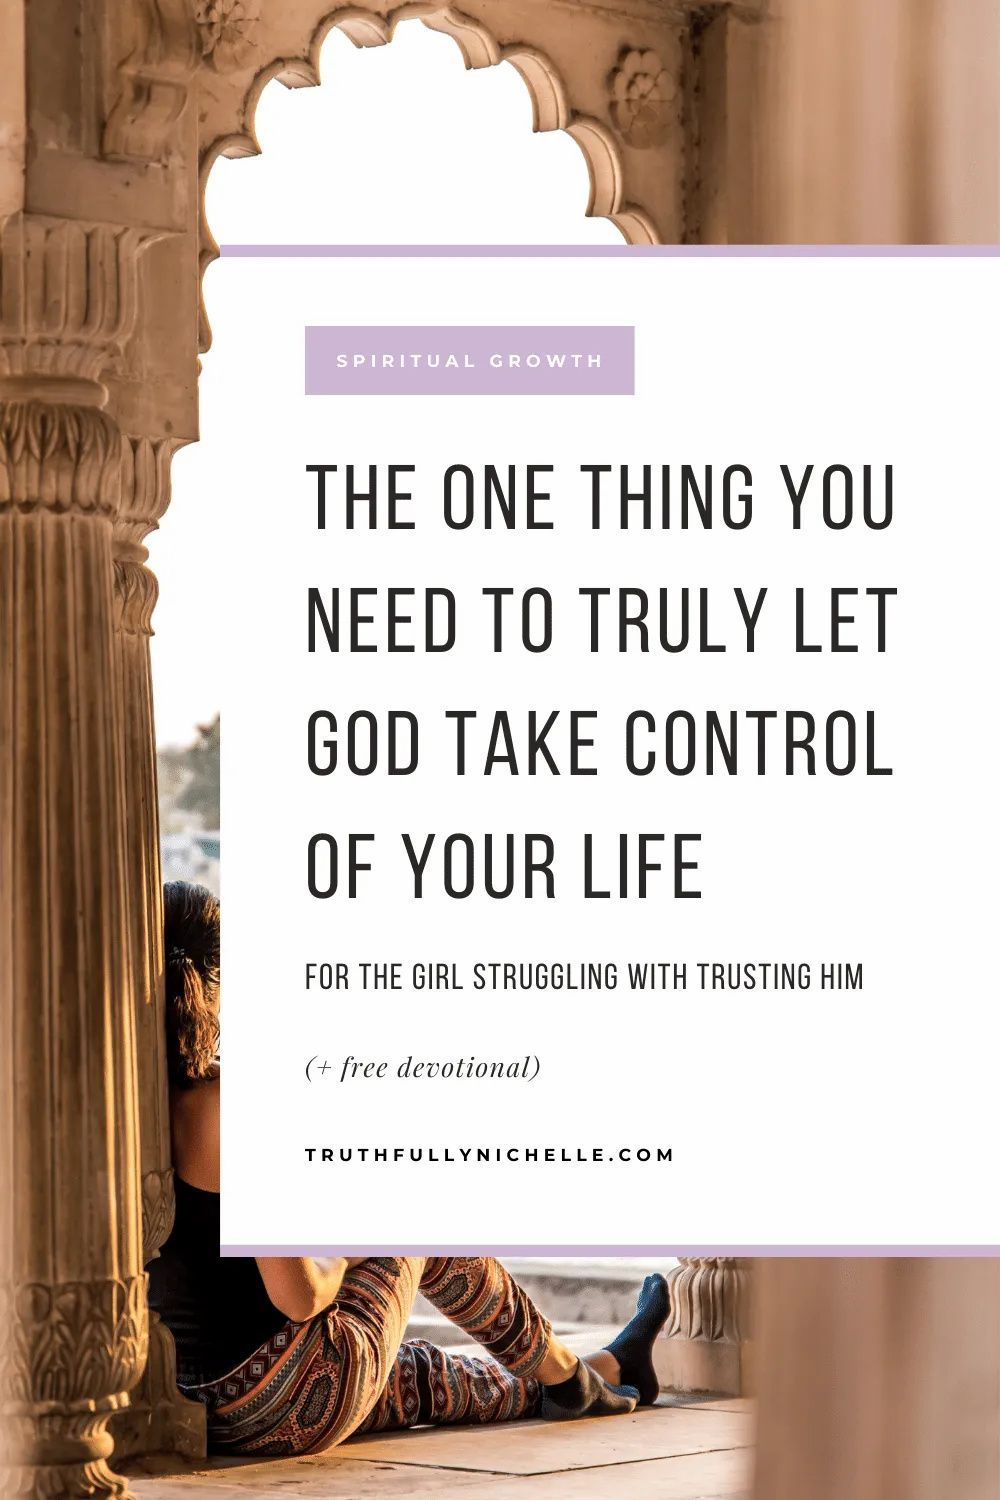 The One Thing You Need to Truly Let God Take Control of